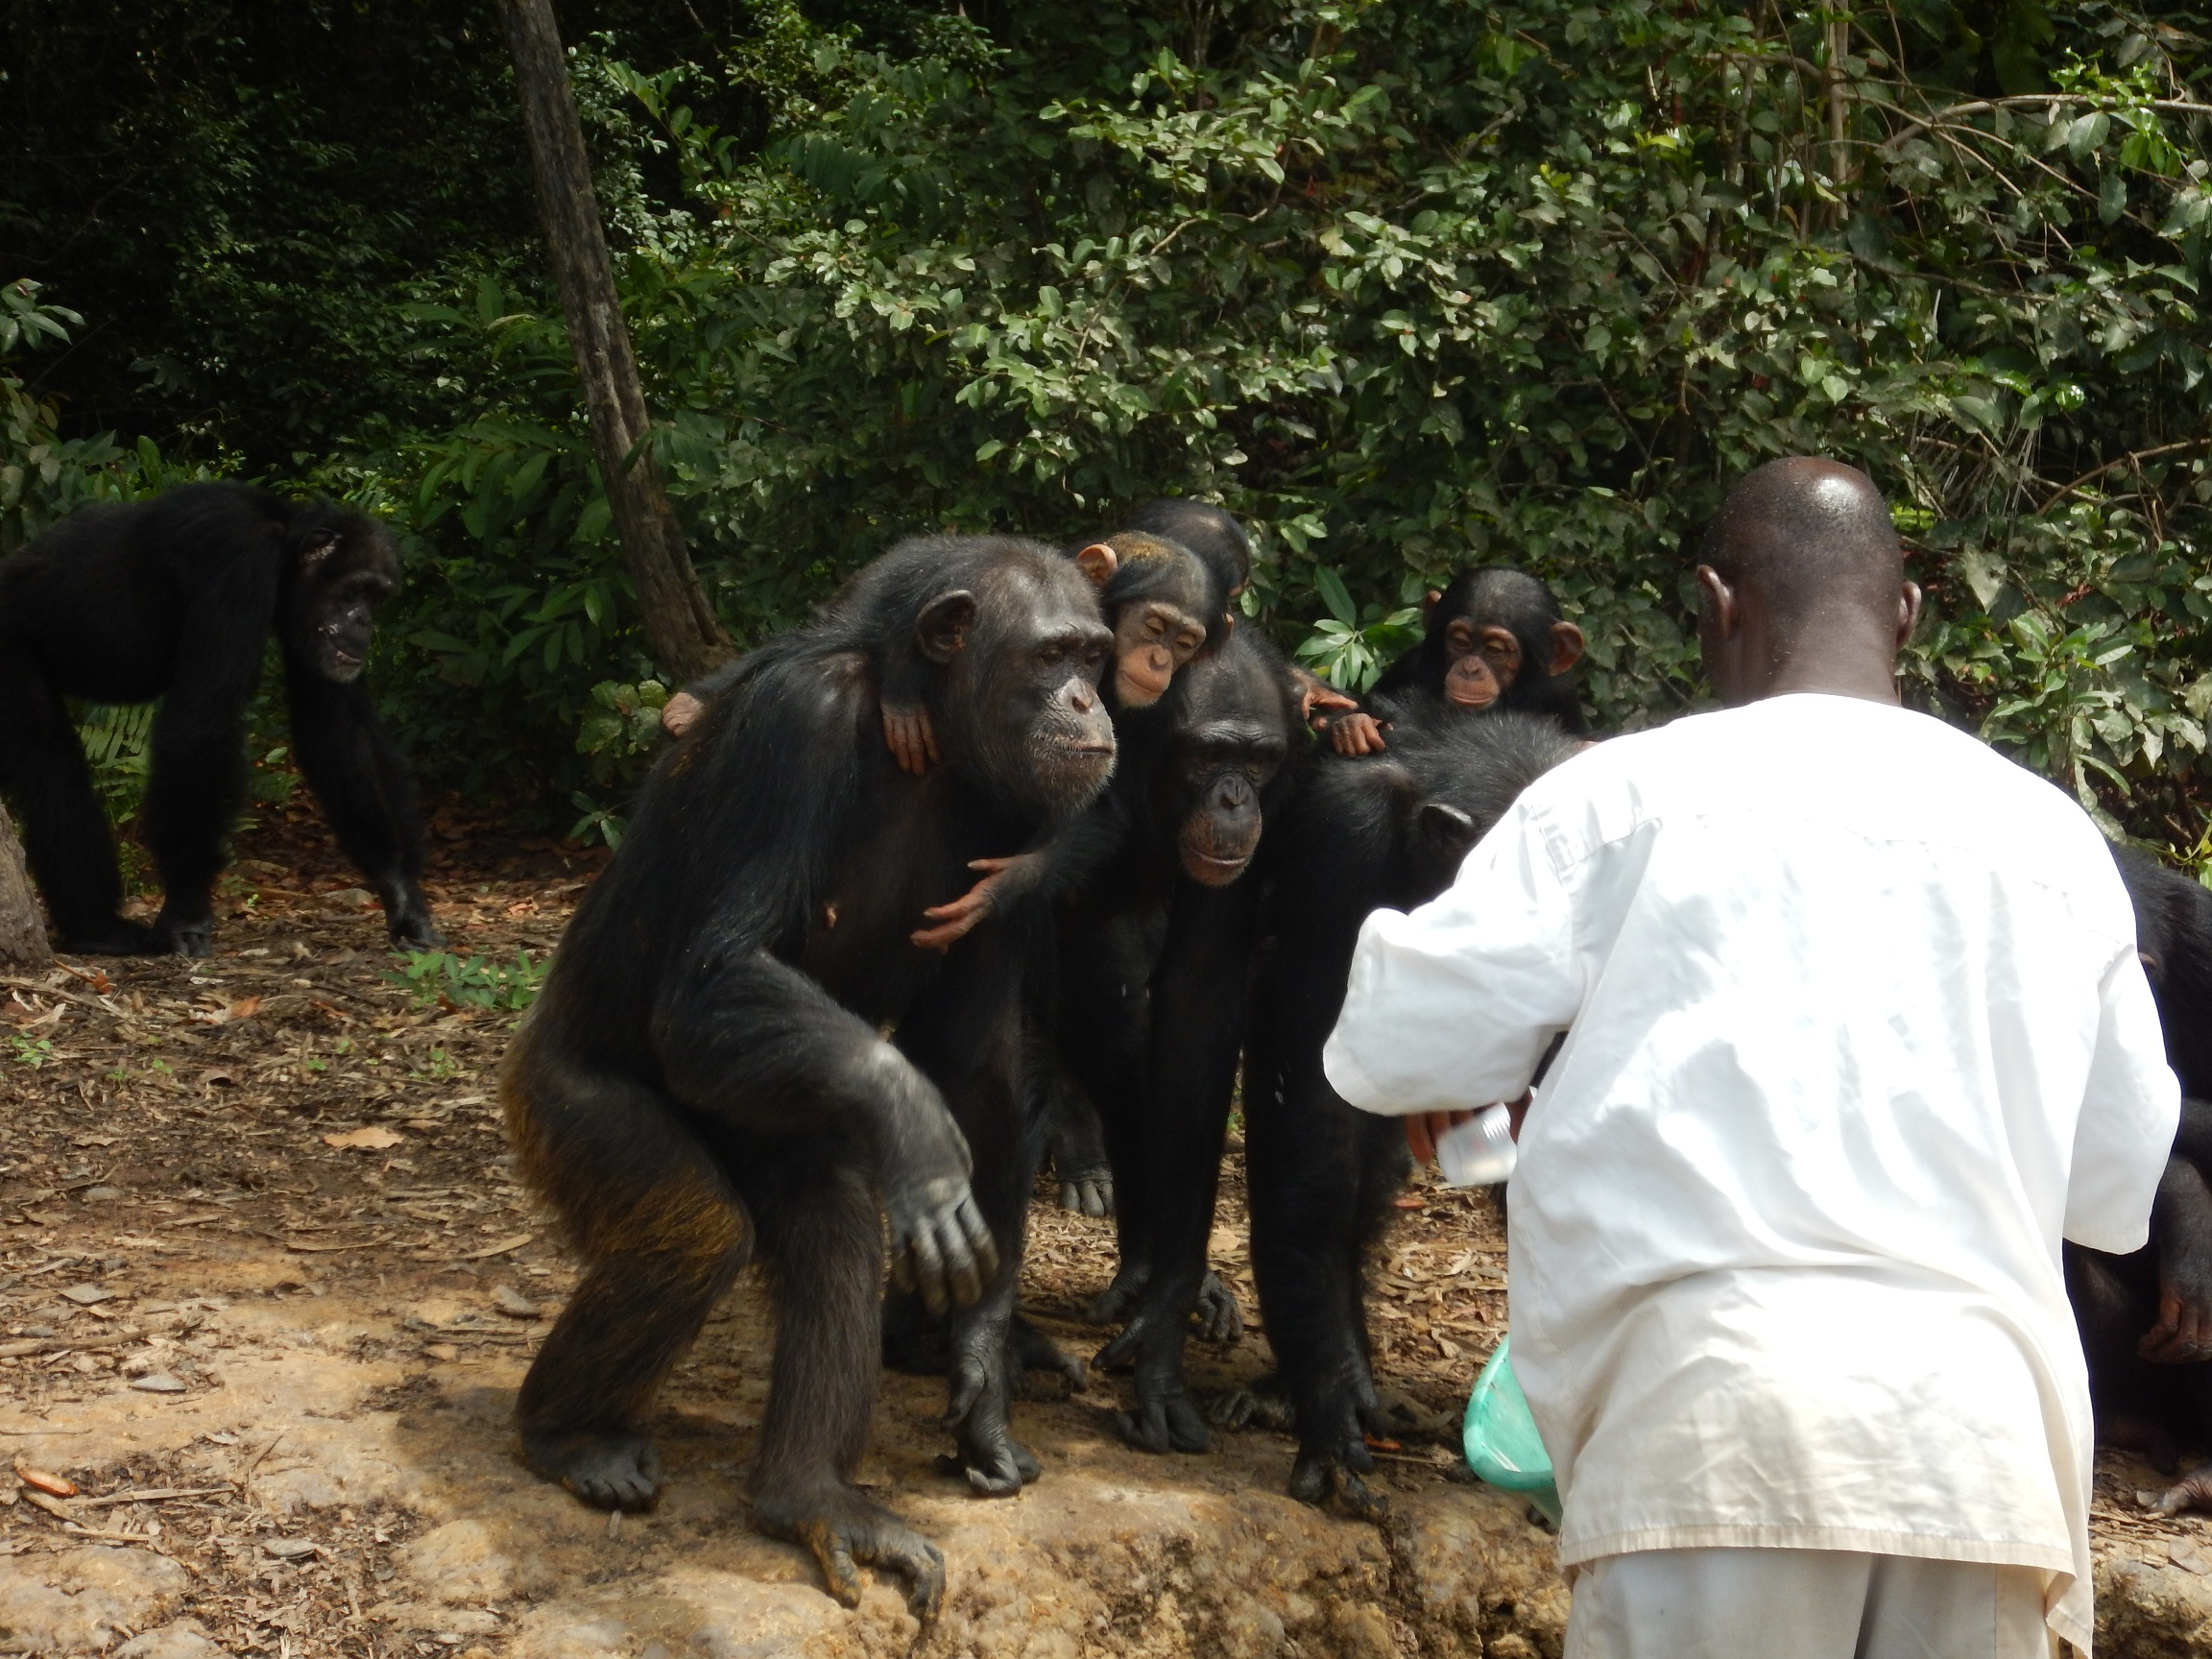 Chimpanzees crowding water's edge, thirsty for water. Credit: Agnes Souchal.